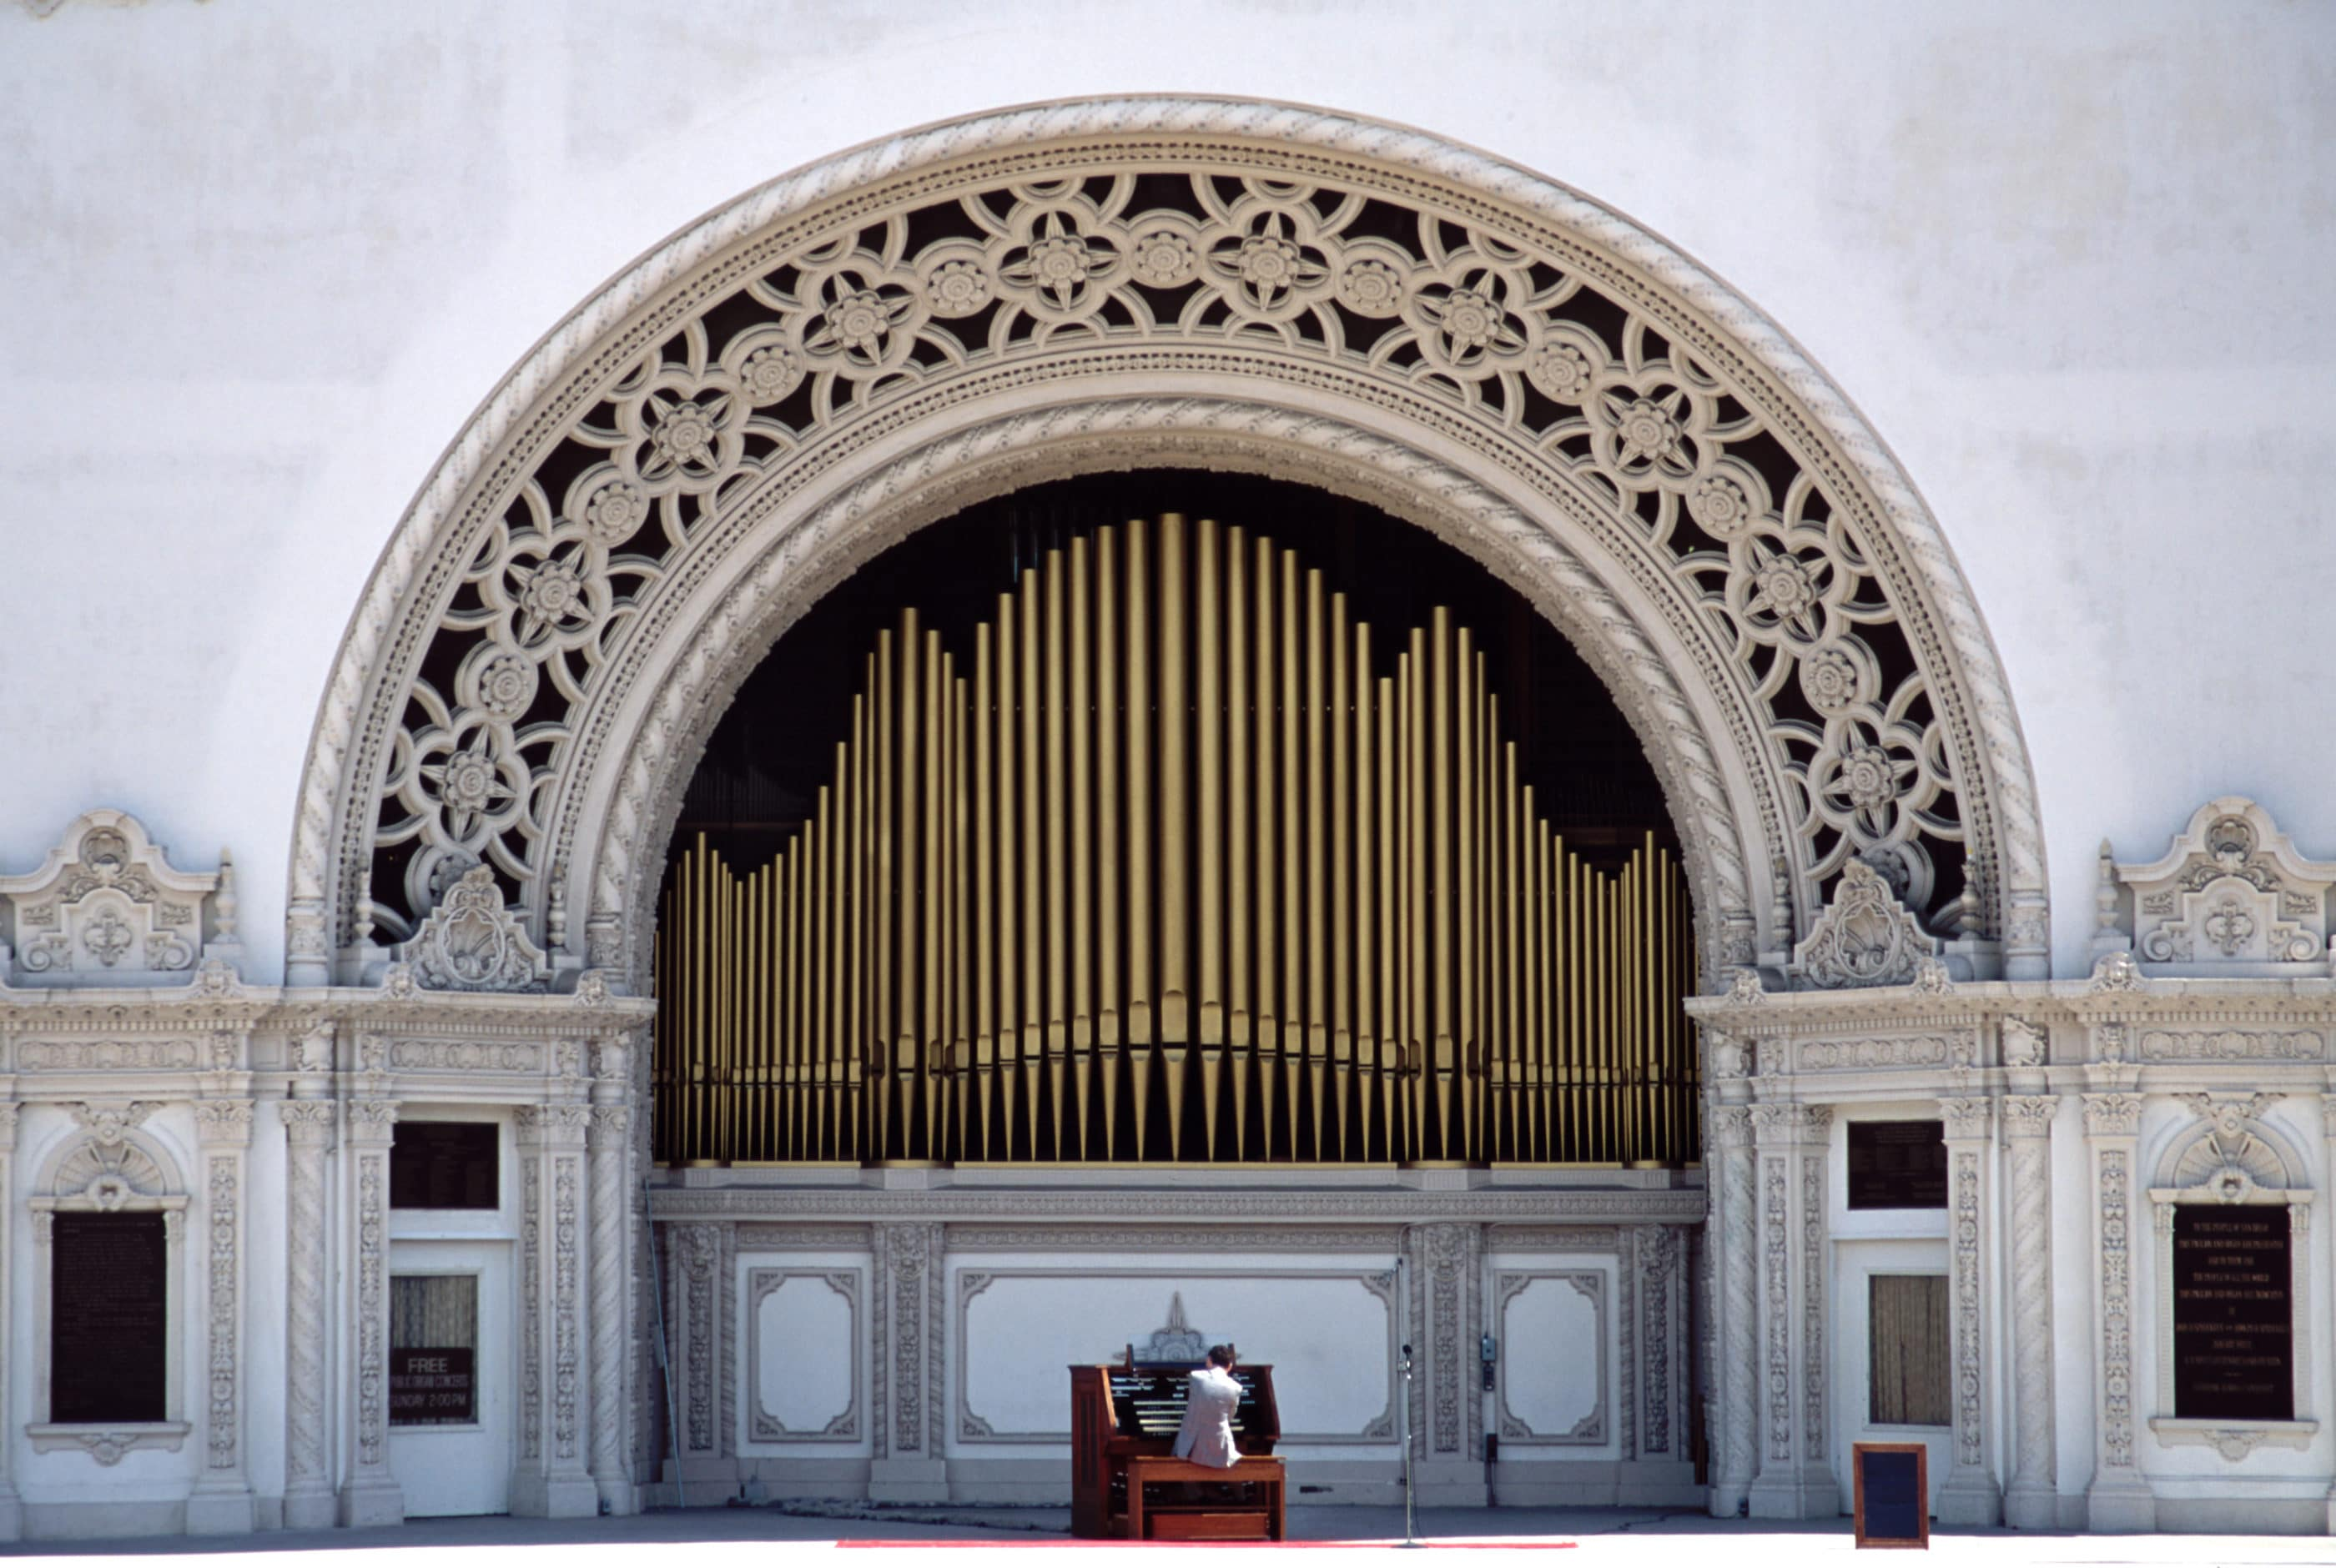 Spreckels Organ Pavillion in Balboa Park